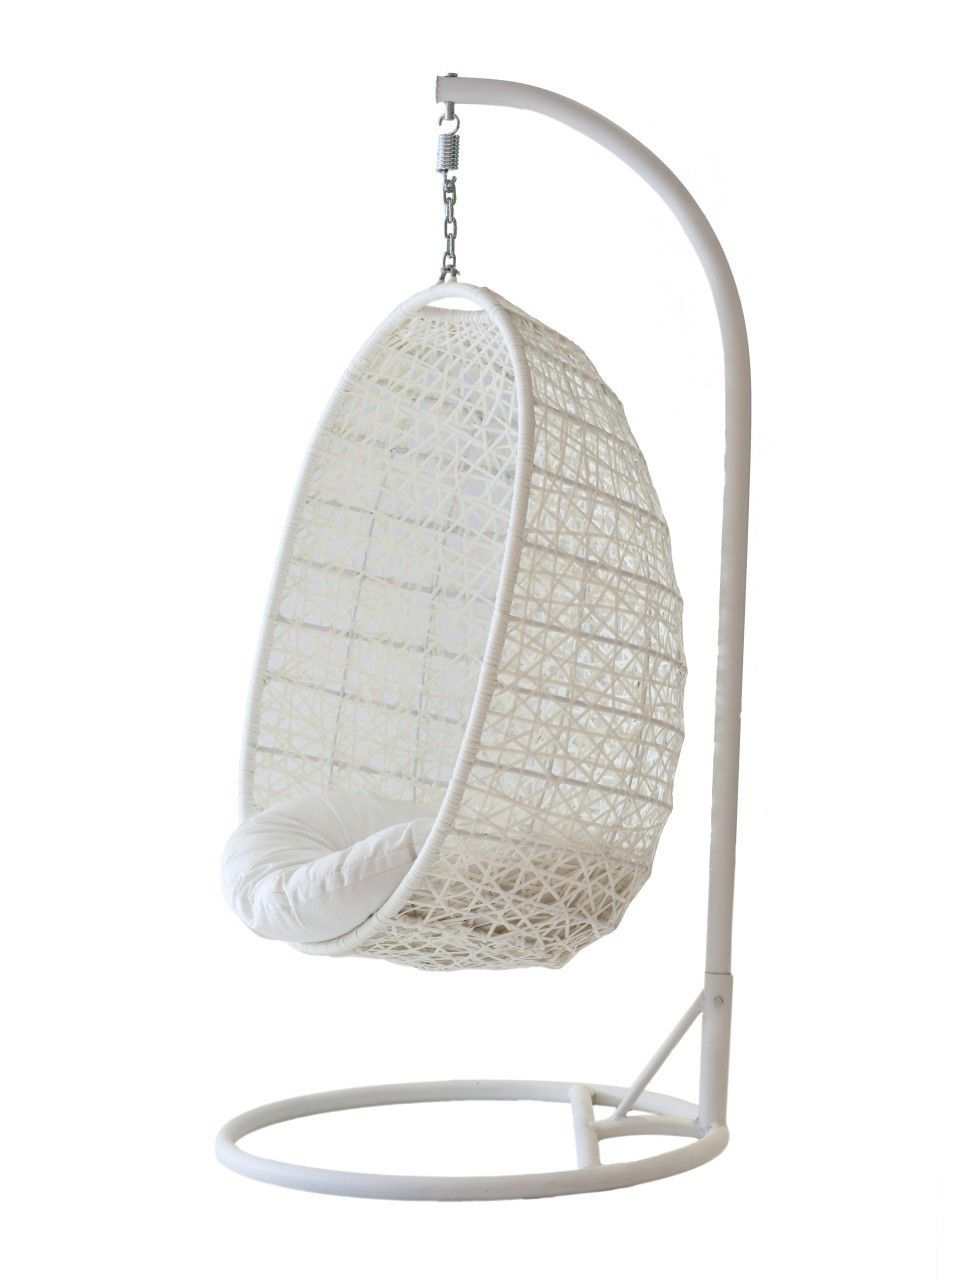 Swing Chair With Stand Kuwait Desk Utm Affordable Hanging For Bedroom Ikea Cool Chairs Indoor And Within At Bedrooms Ikeachair